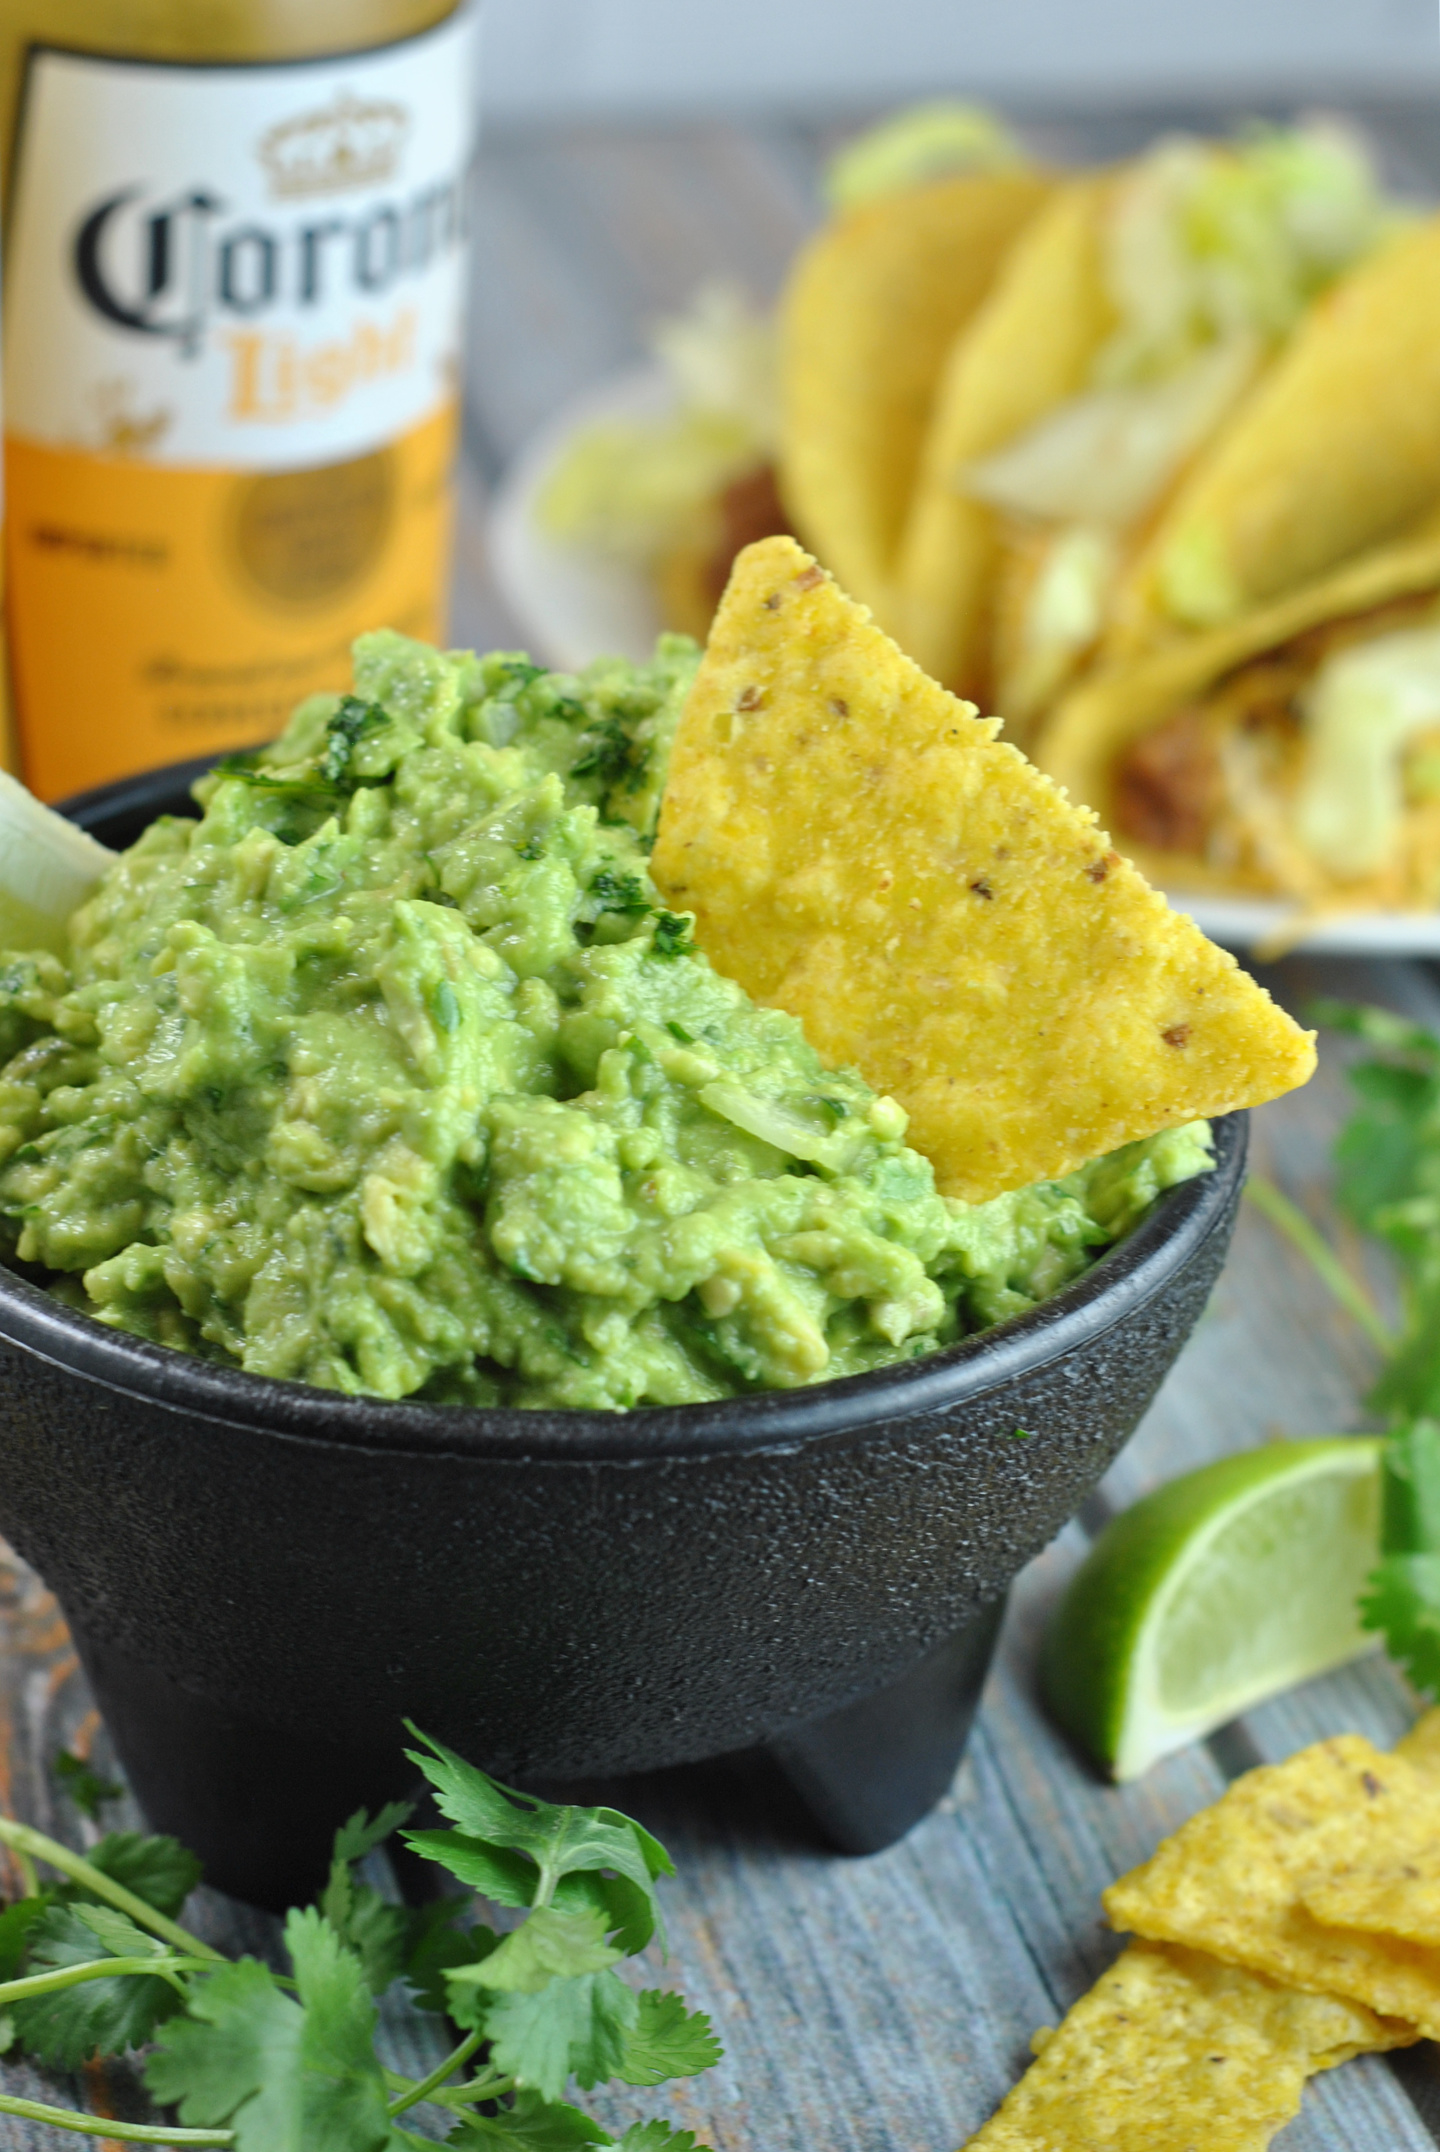 Only the Best Guacamole via @preventionrd